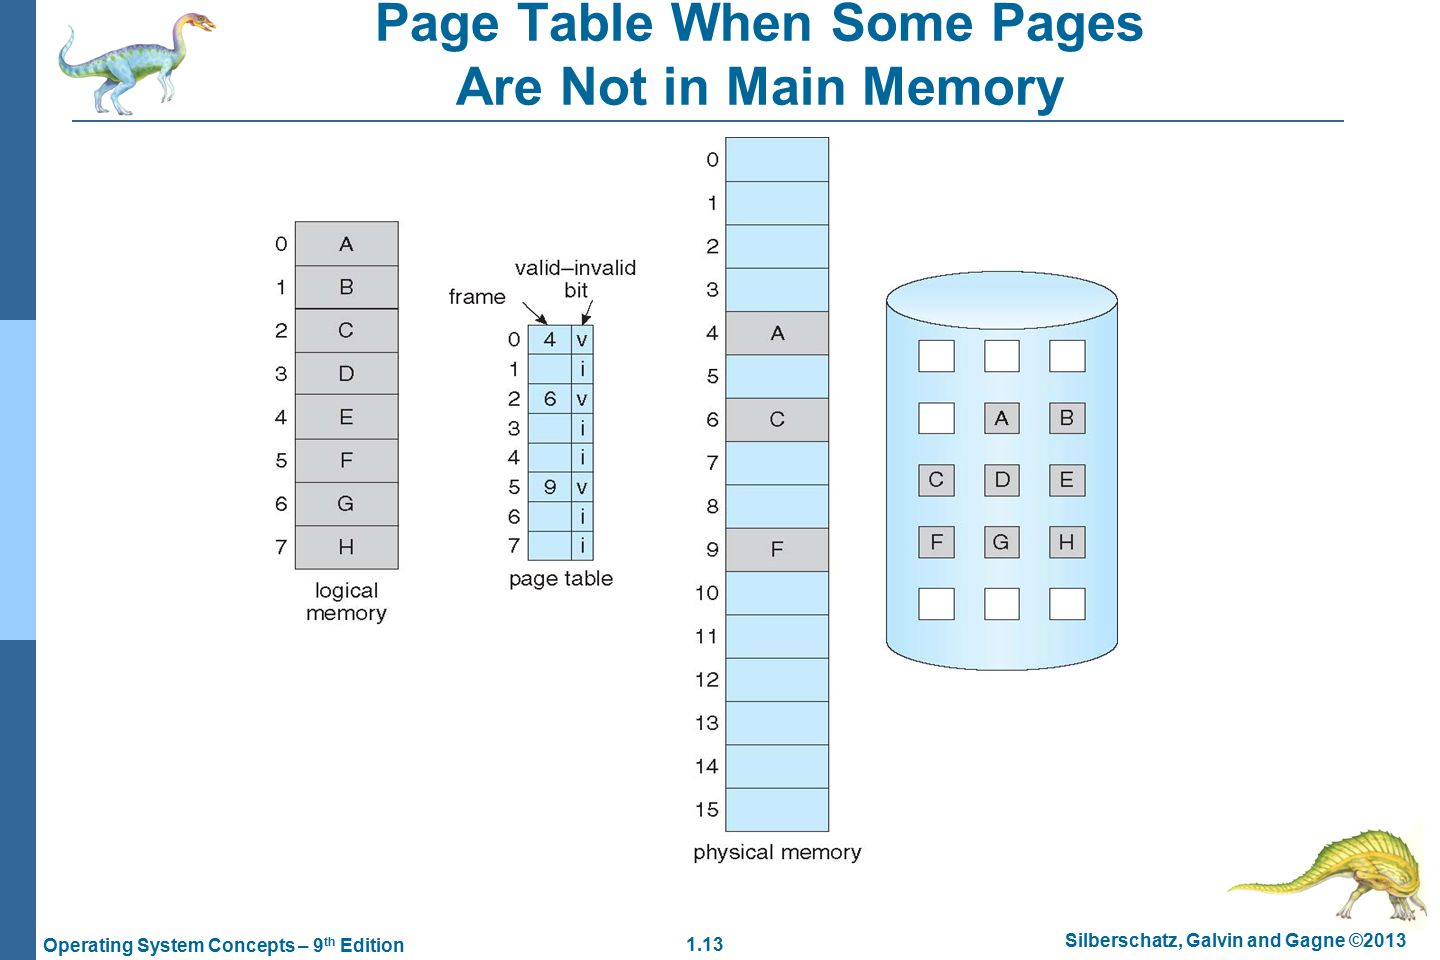 1.13 Silberschatz, Galvin and Gagne ©2013 Operating System Concepts – 9 th Edition Page Table When Some Pages Are Not in Main Memory